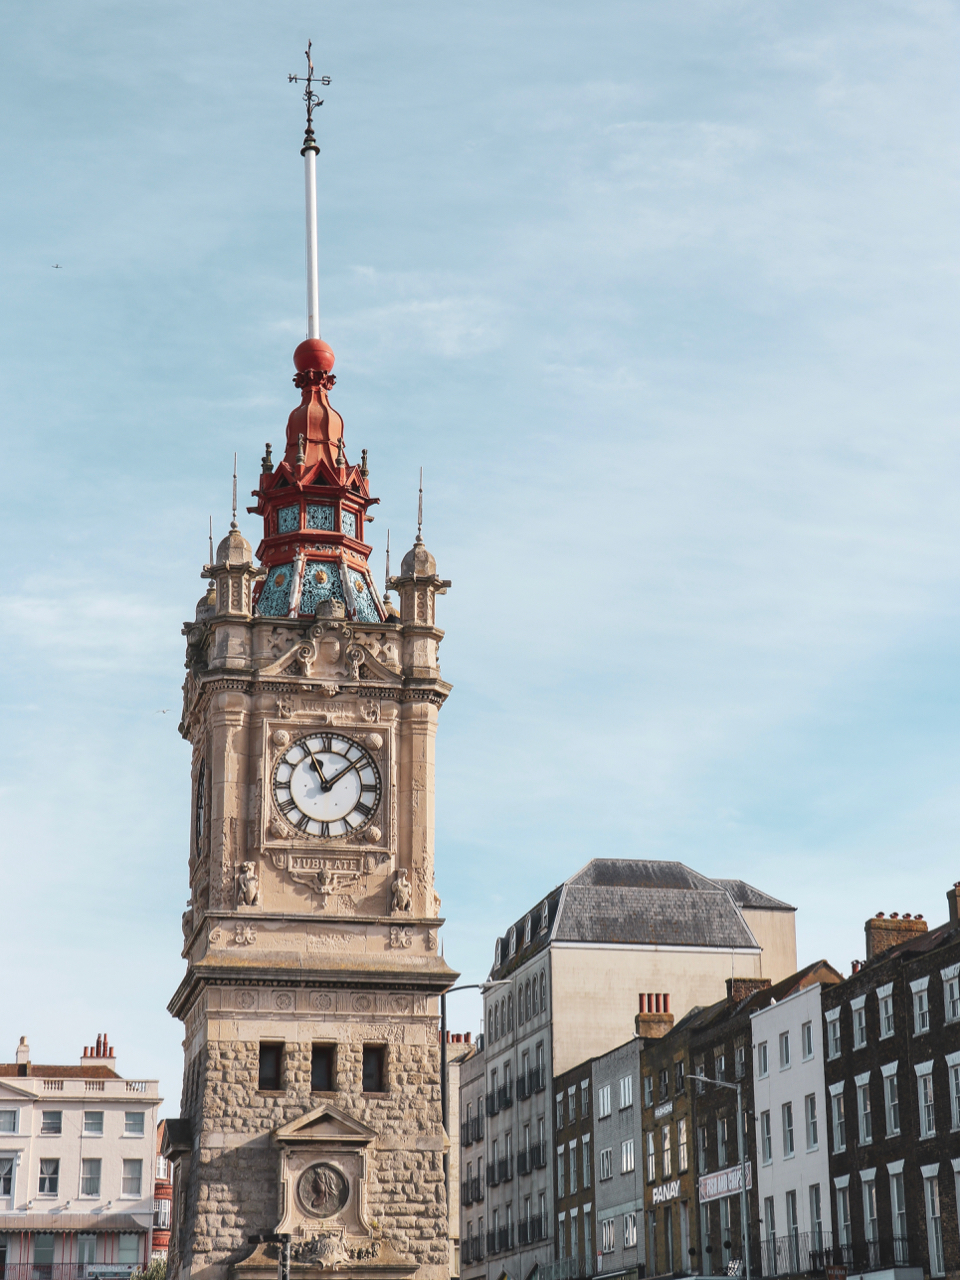 Margate's ornate Clock Tower stands in front of more modern buildings - One Day in Margate